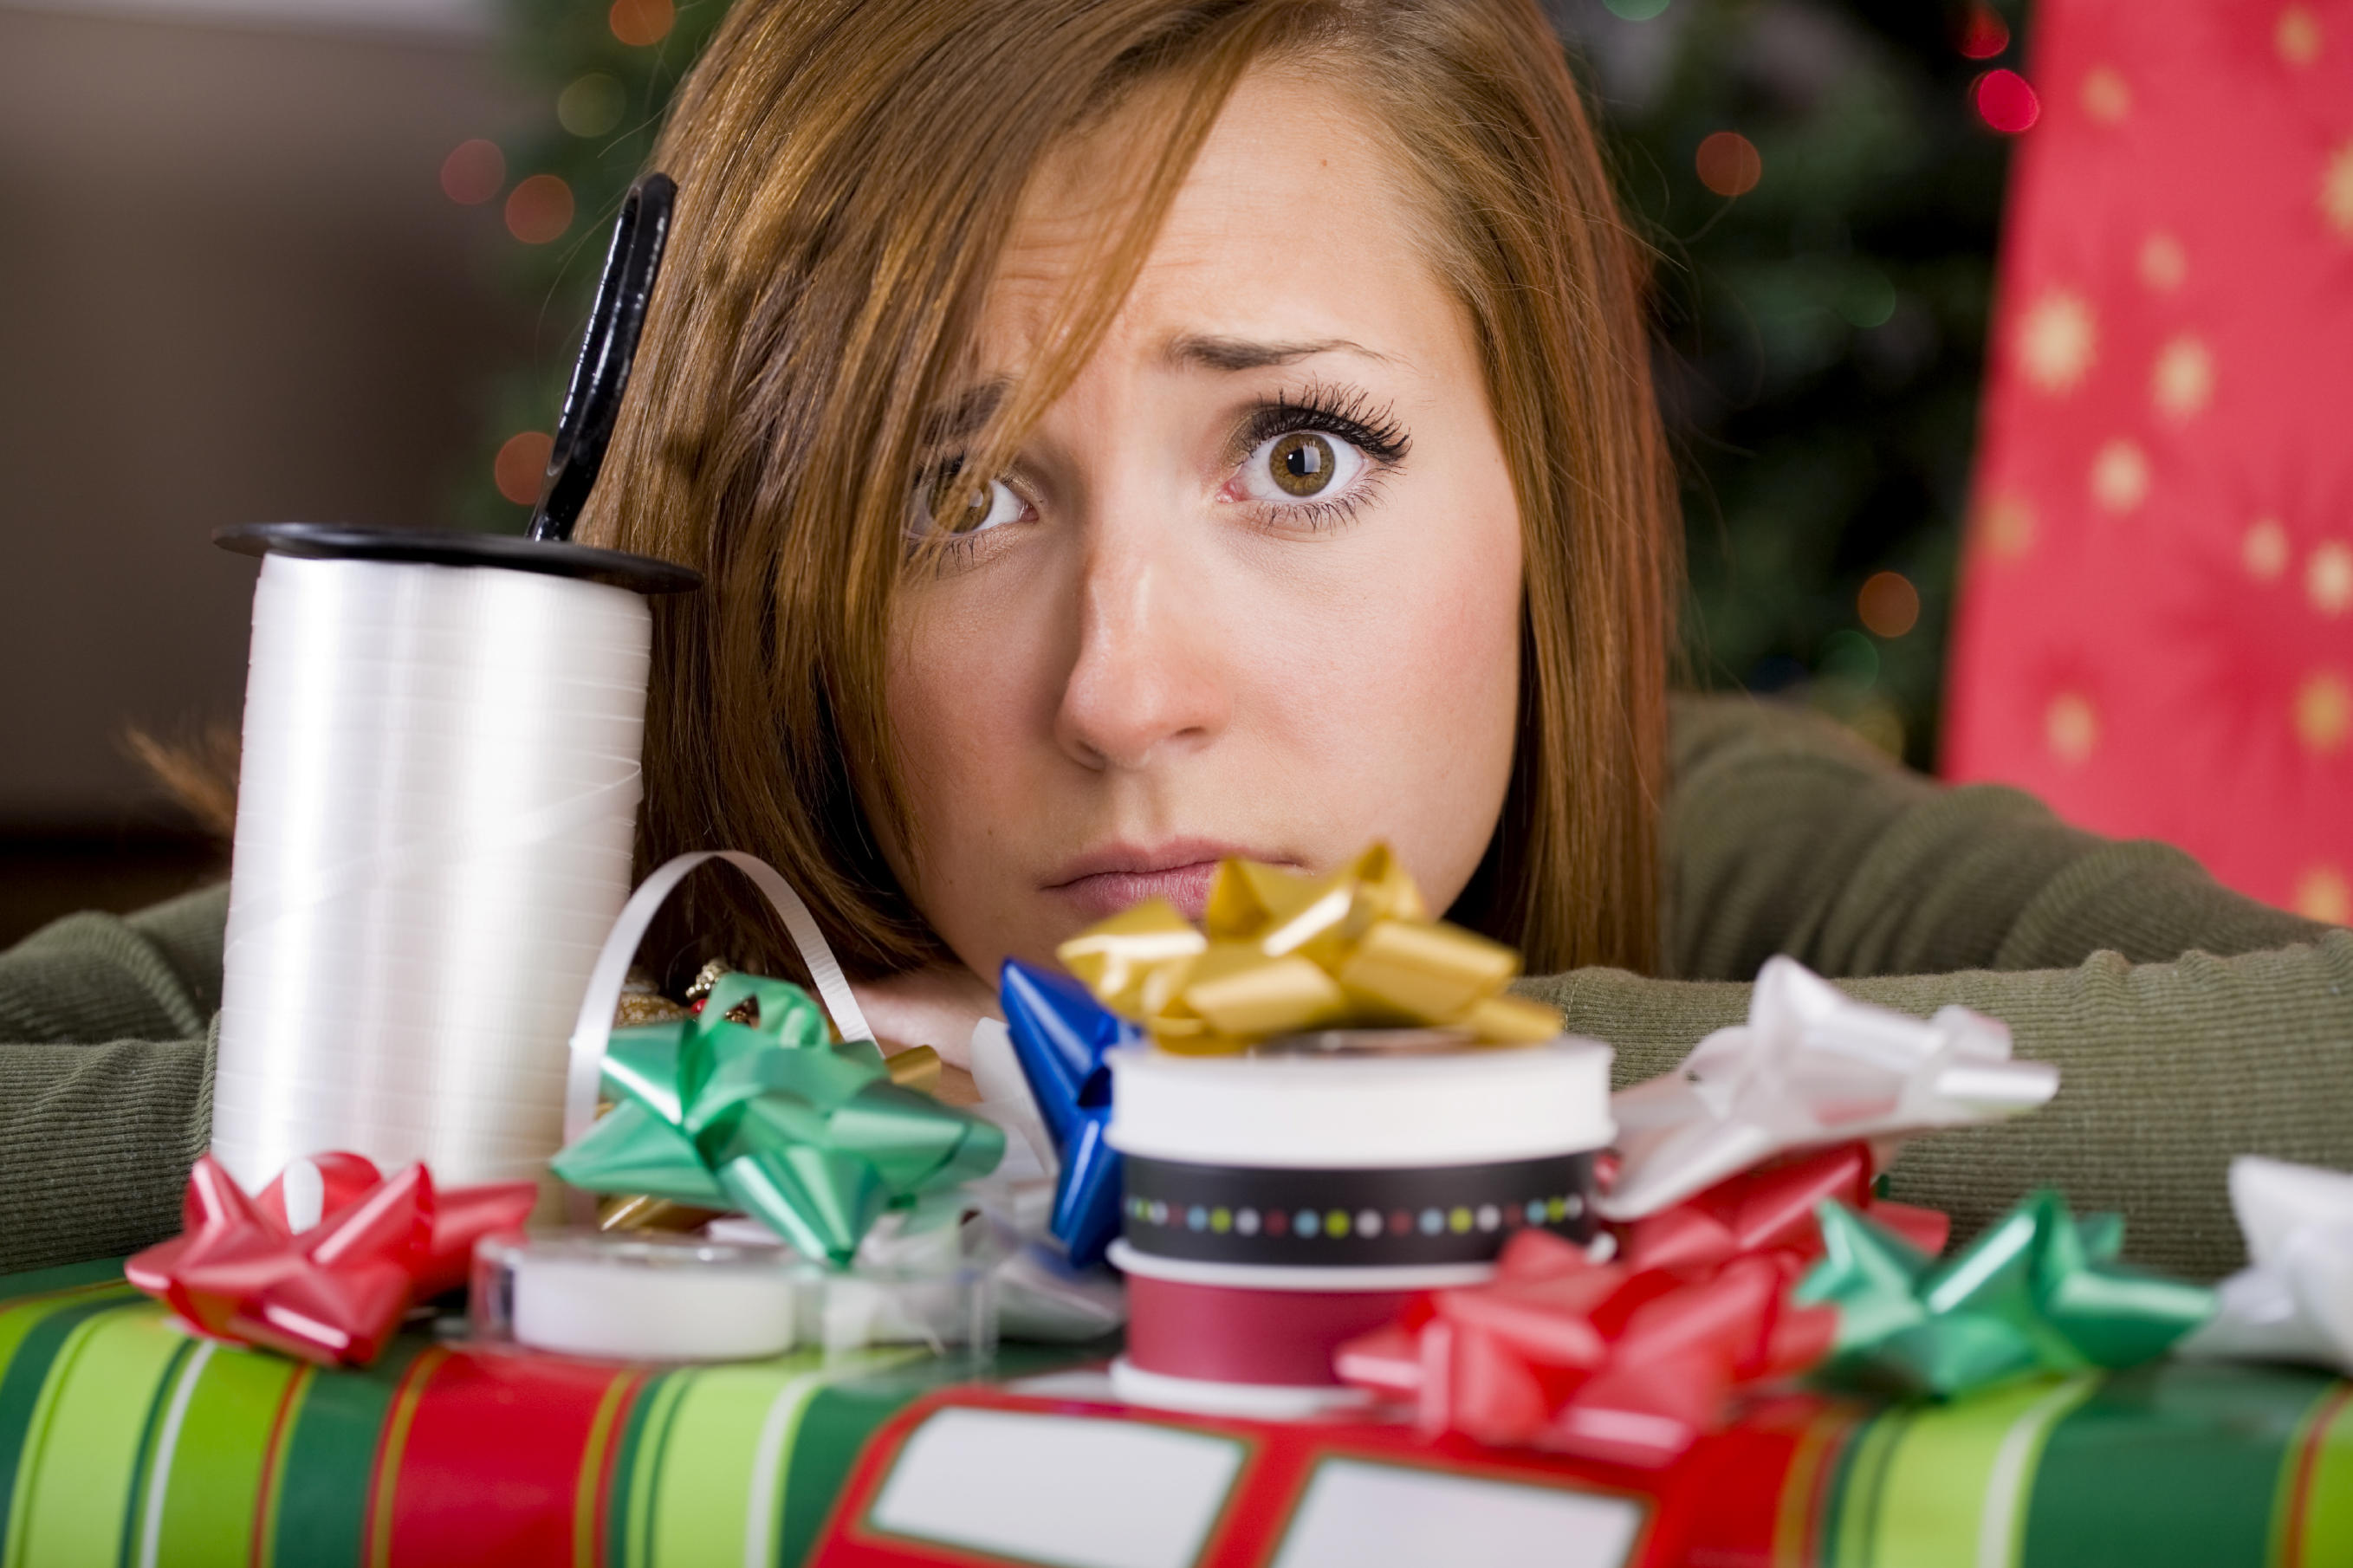 picture of woman stressing at holiday